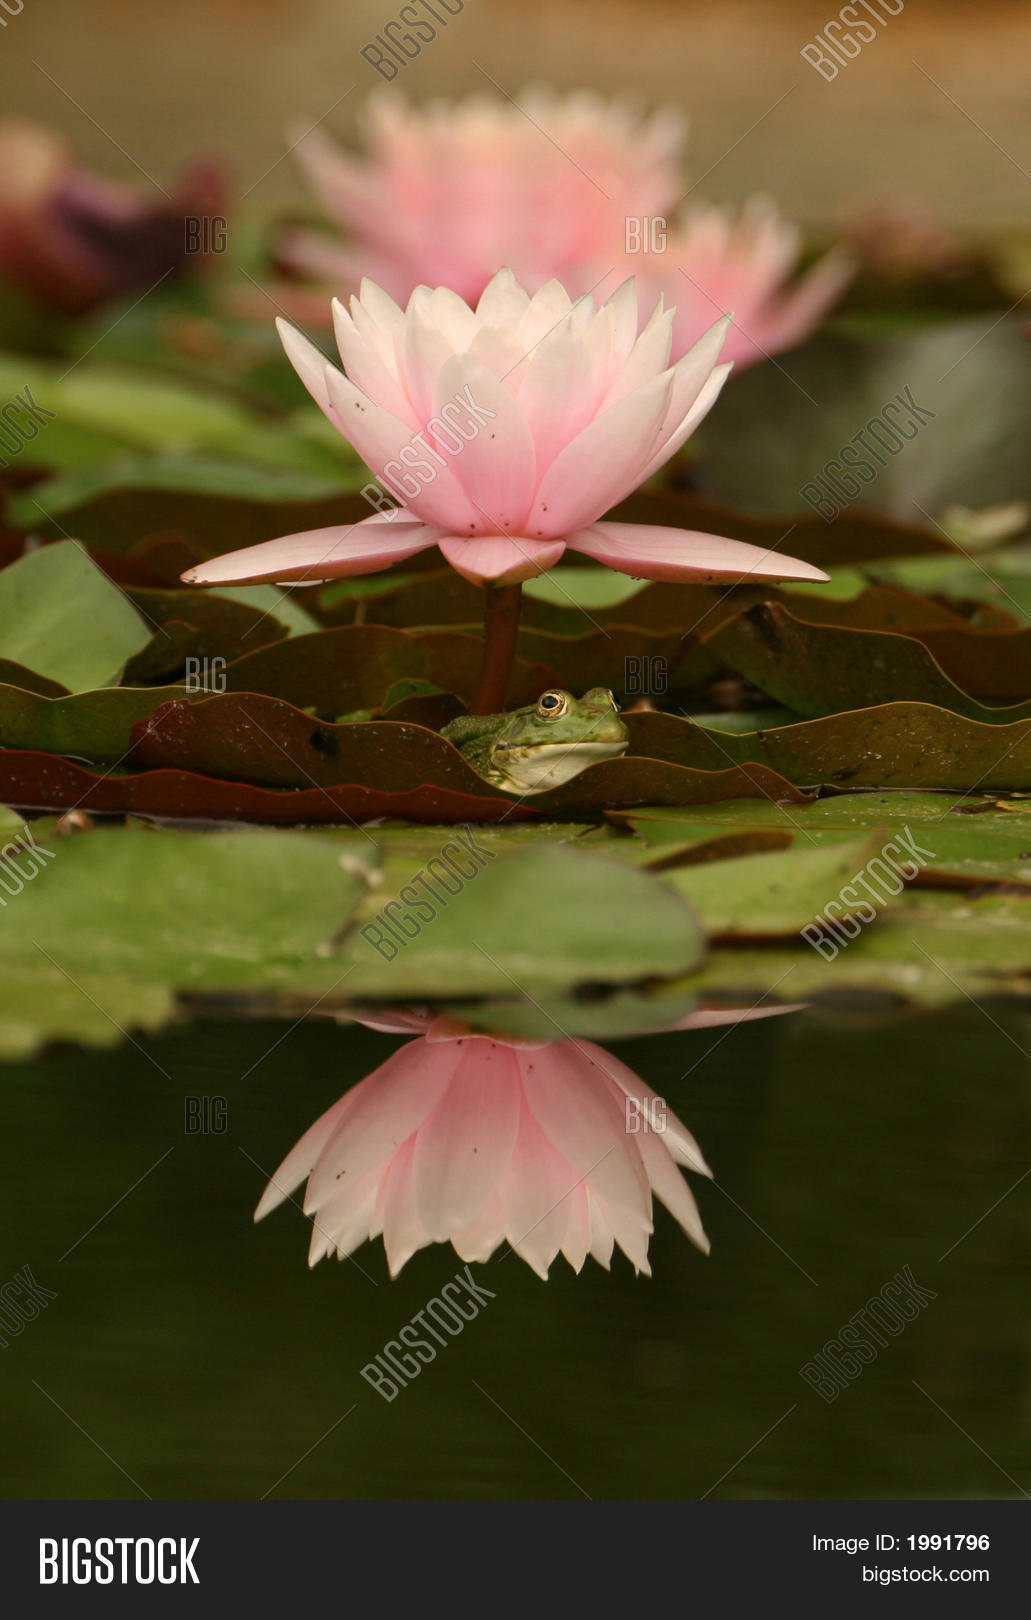 Water lily prince image photo free trial bigstock water lily prince izmirmasajfo